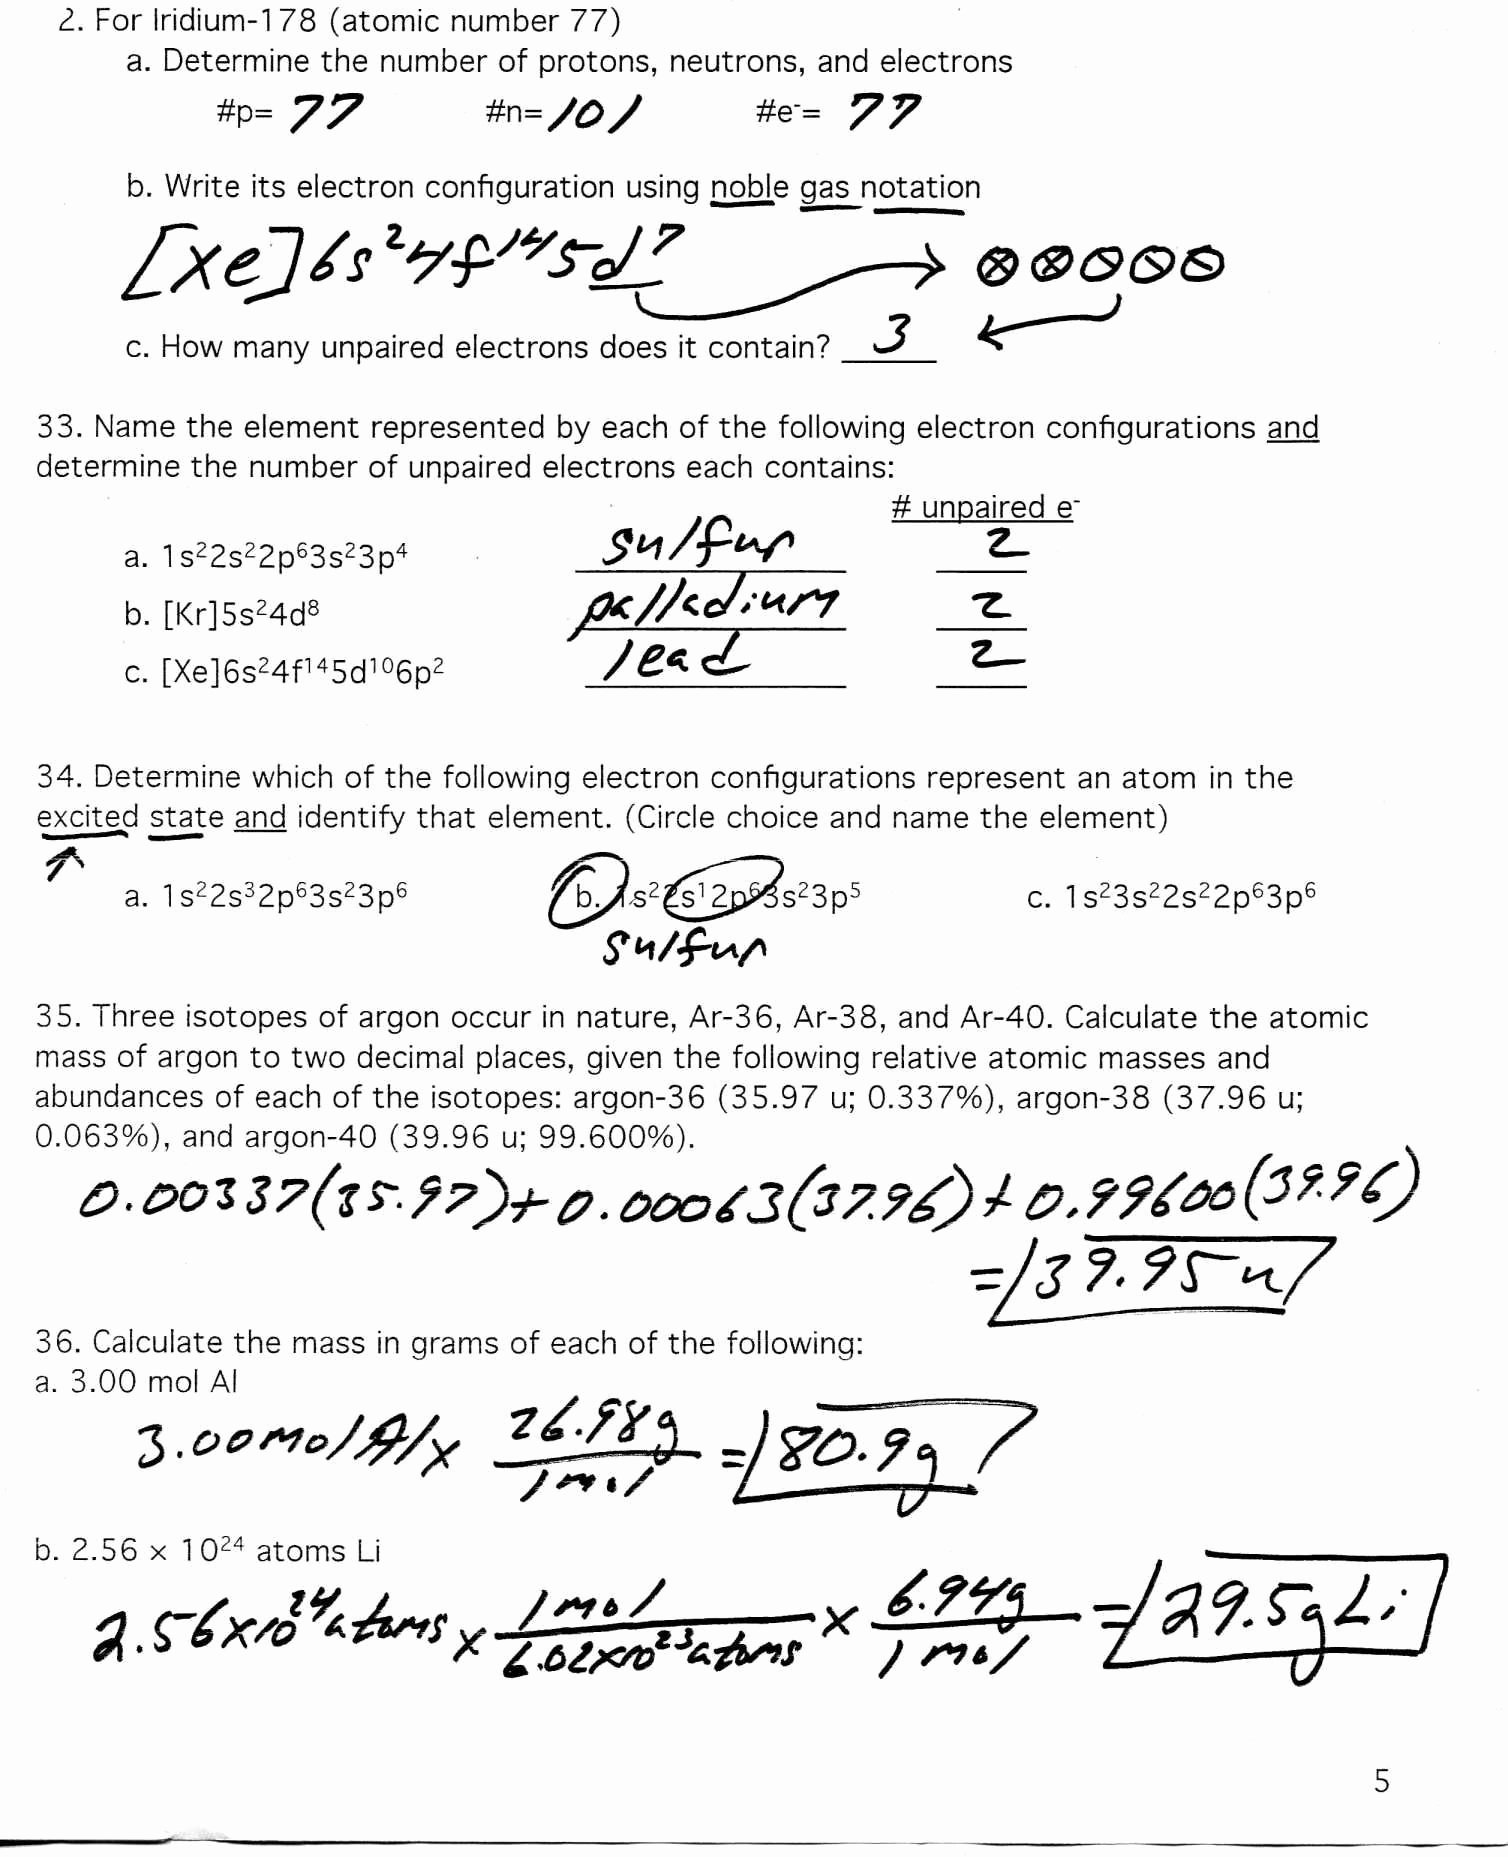 Atomic Structure Worksheet Answer Key Luxury Protons Neutrons and Electrons Practice Worksheet Answer